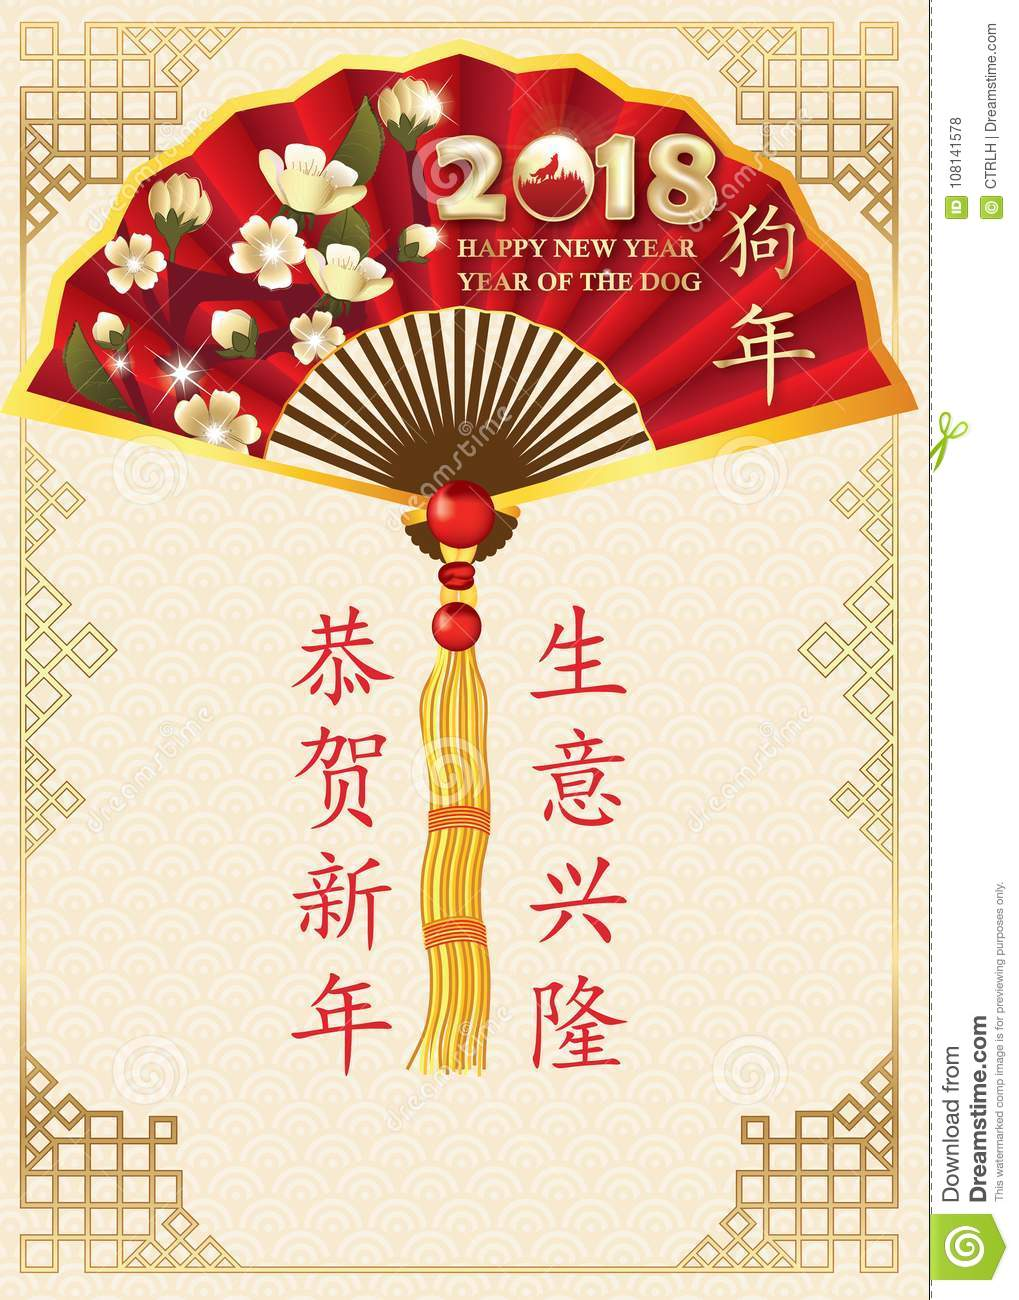 Happy Chinese New Year of the Dog 2018! vintage style greeting card